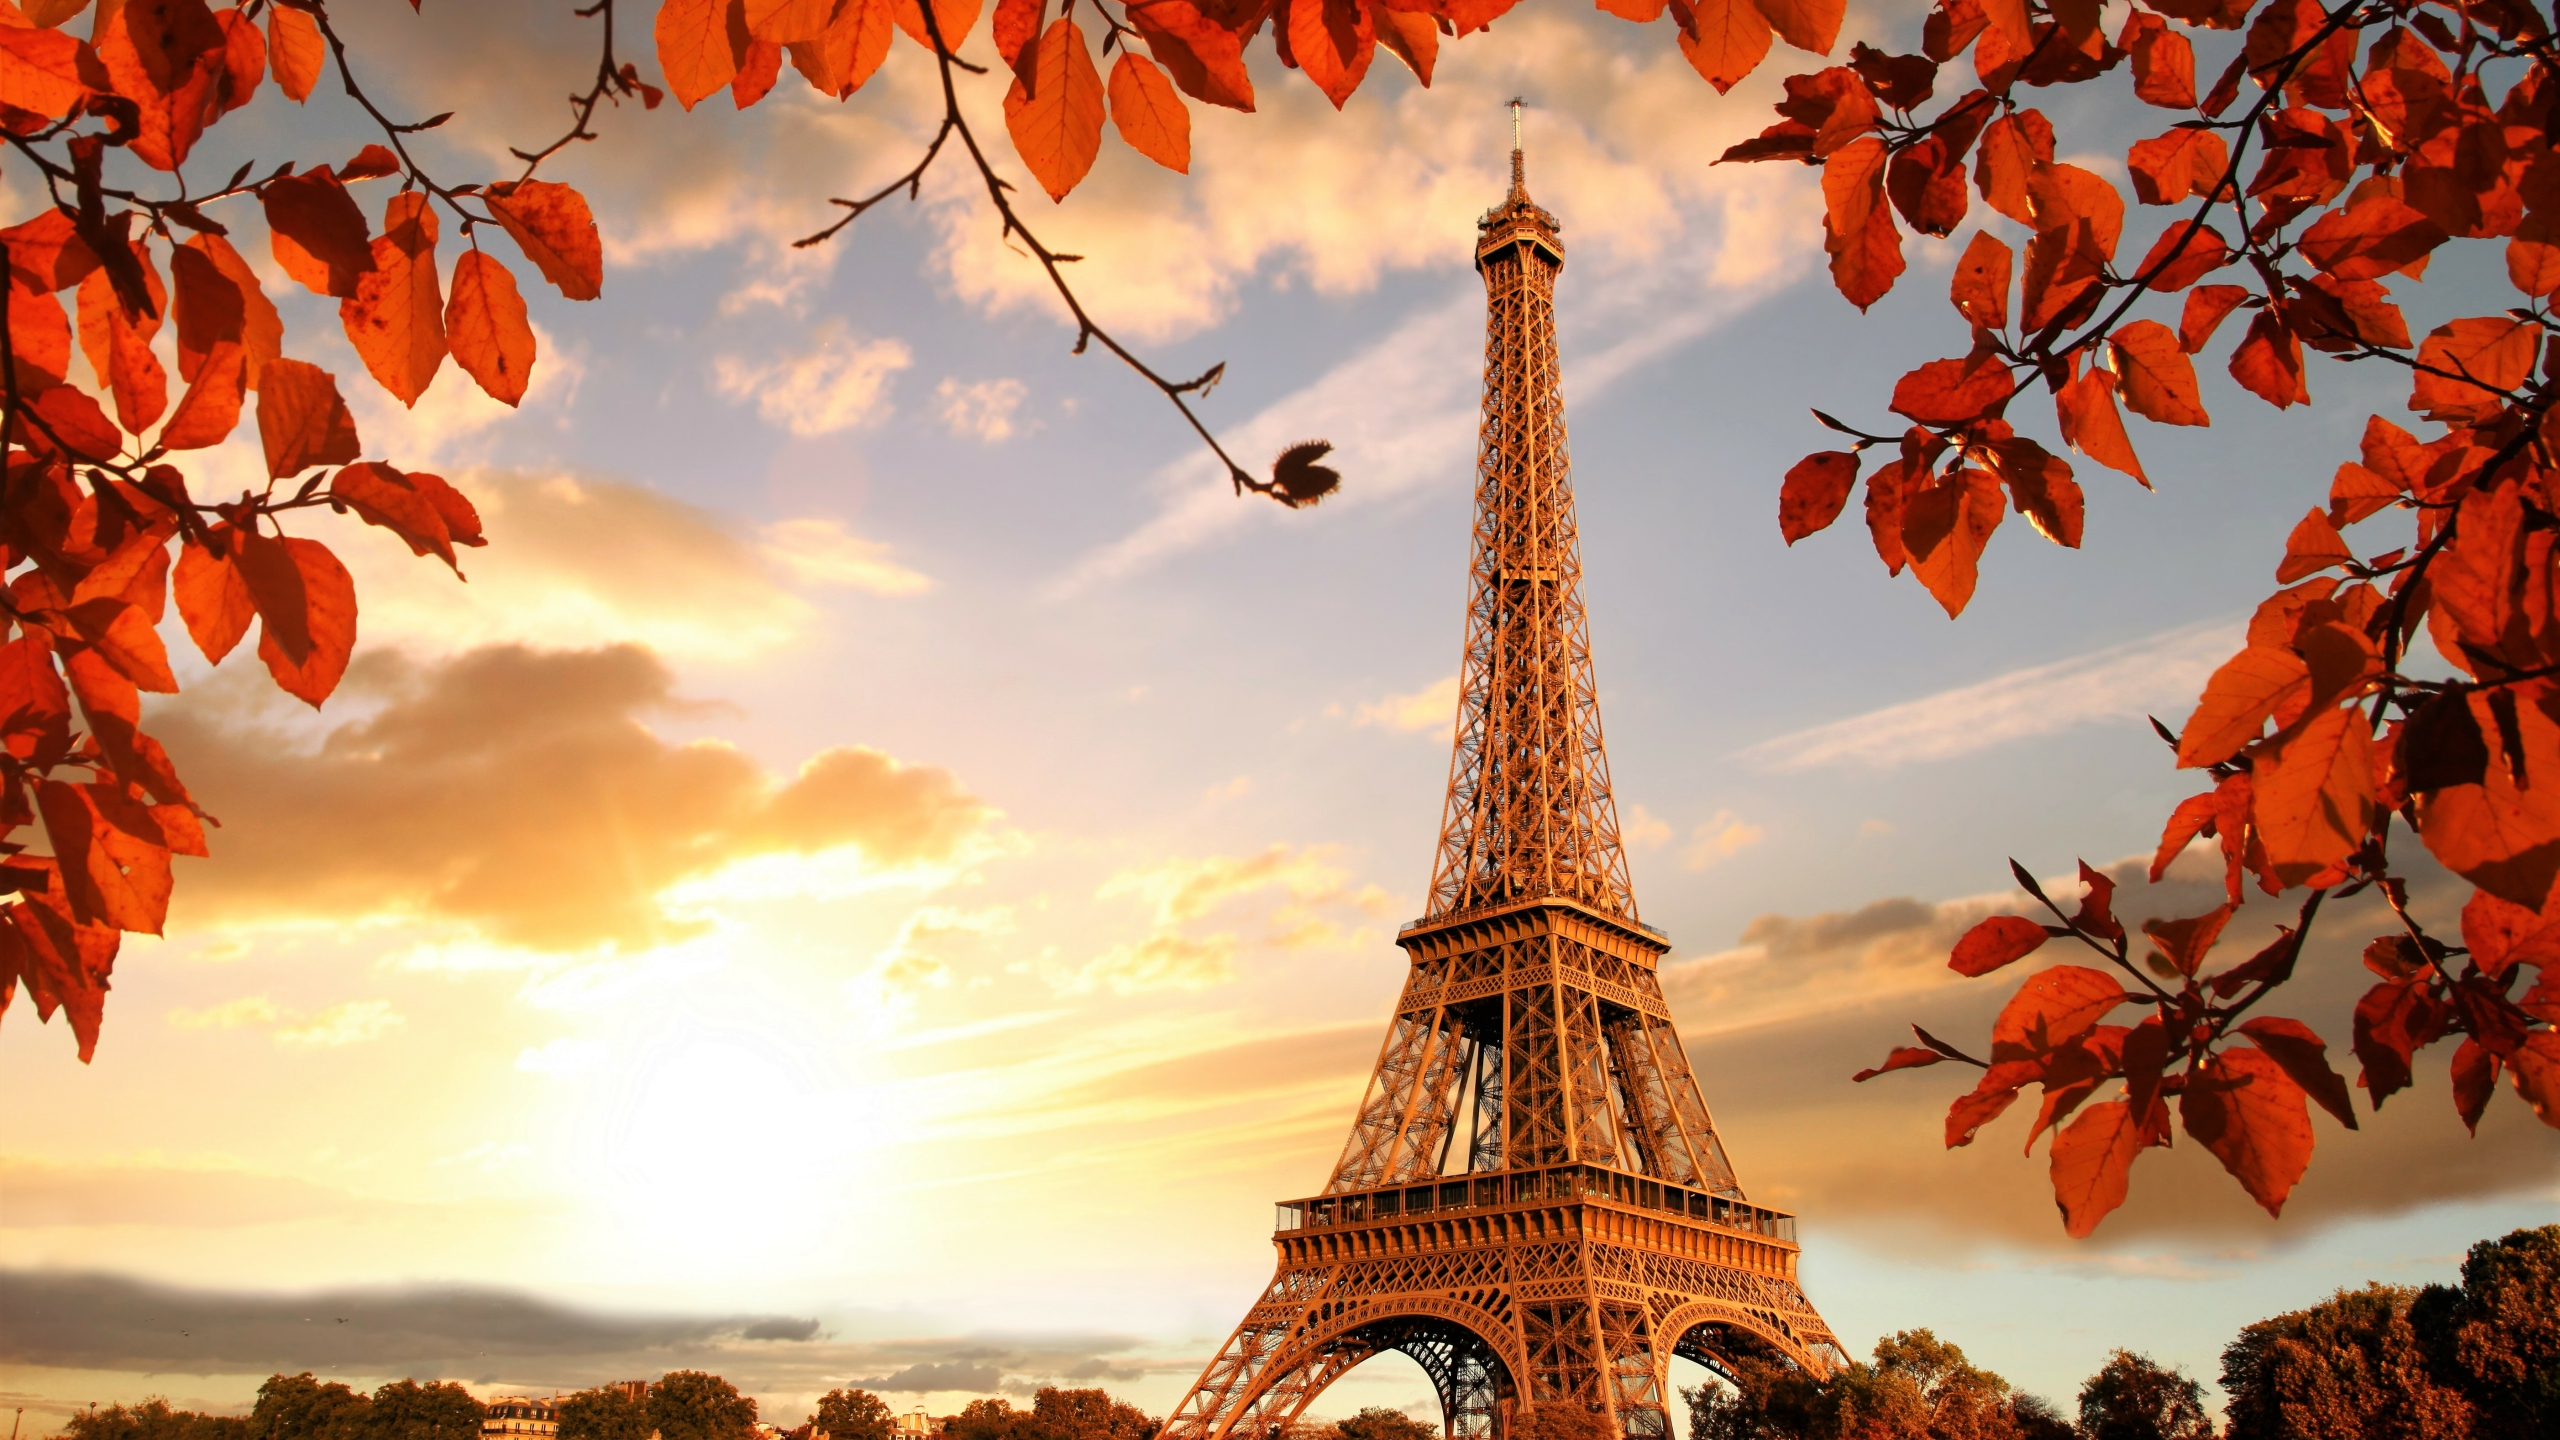 Eiffel Tower In Autumn France Paris Fall Hd 4k Wallpaper